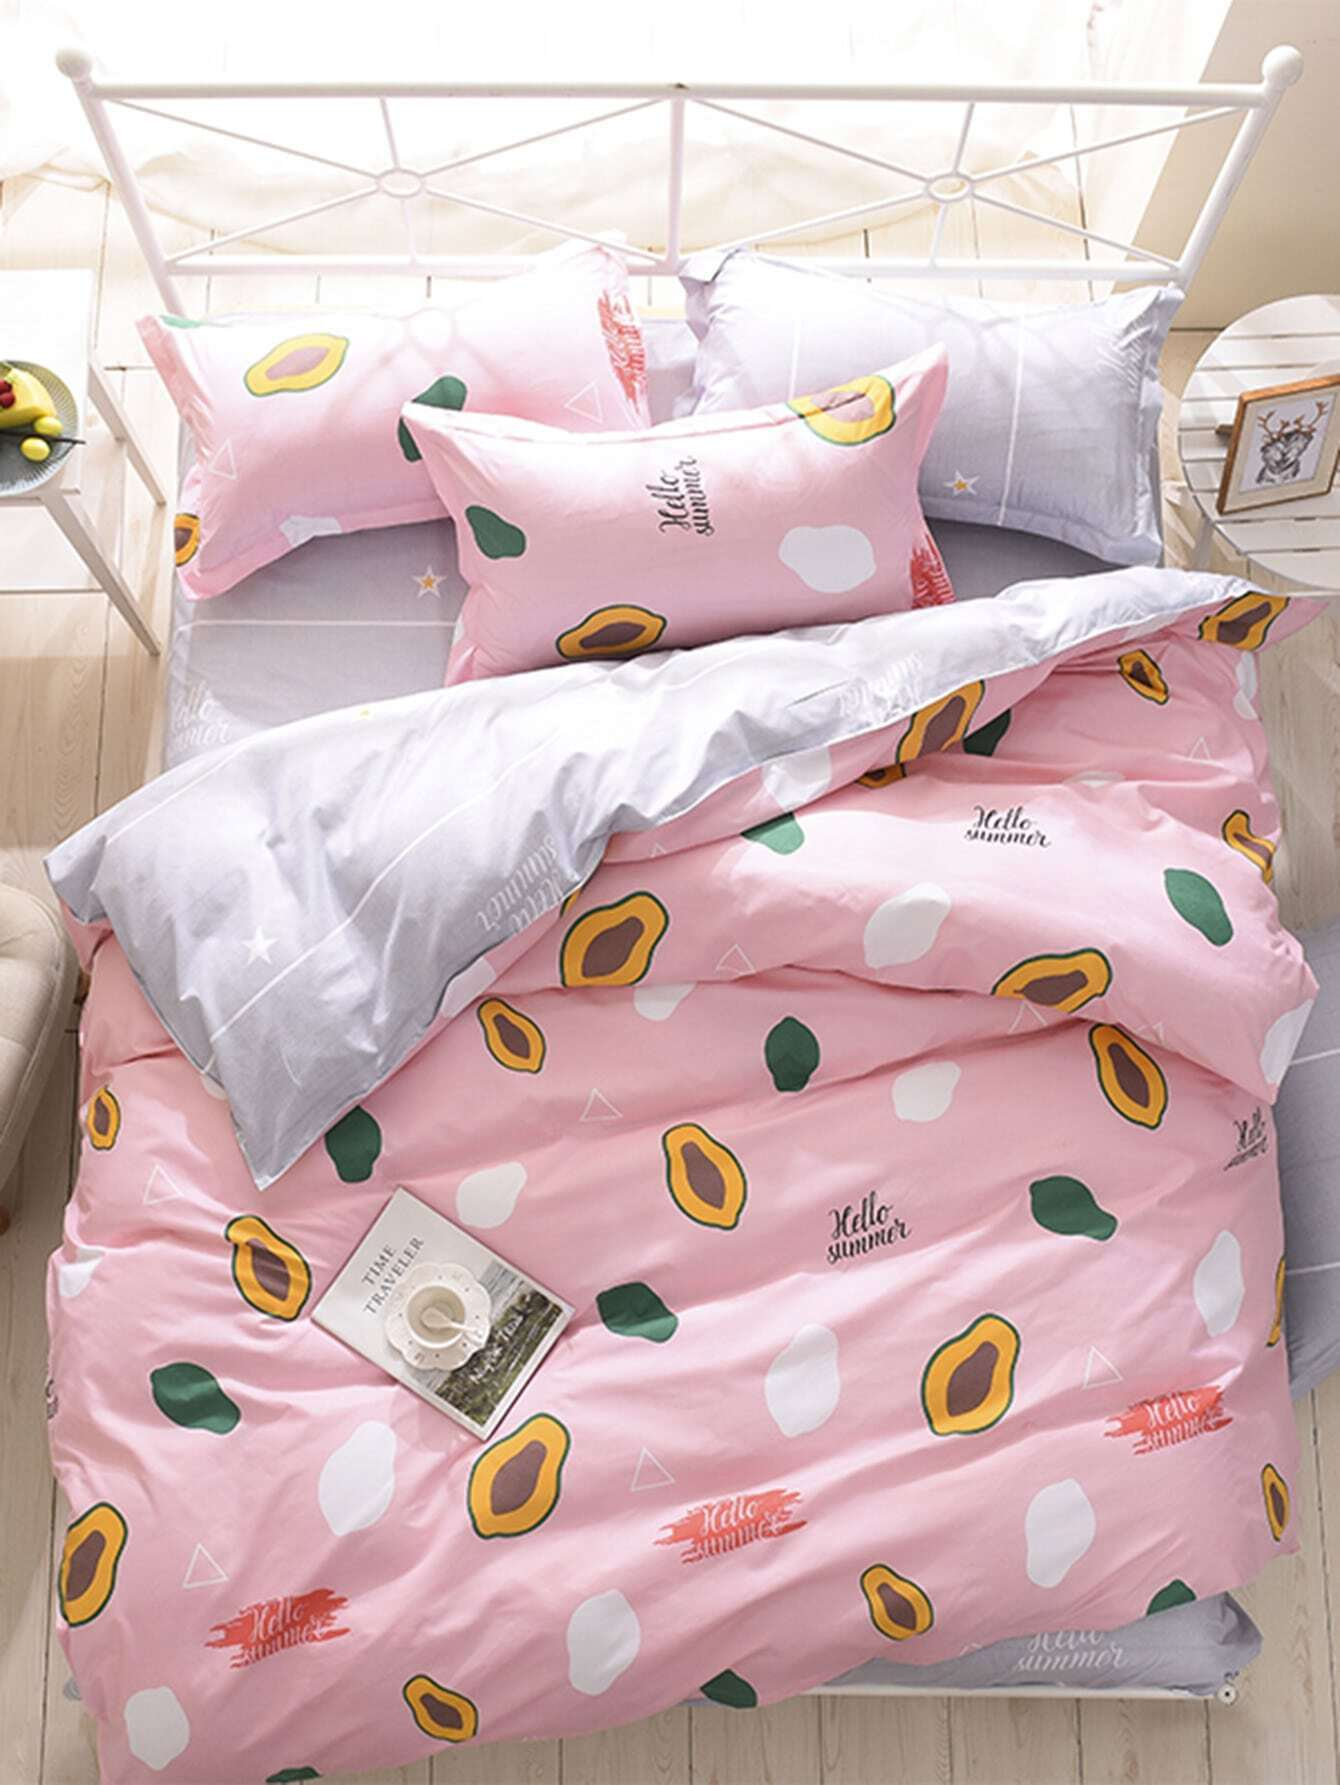 1.2m 4Pcs Fruit Print Duvet Cover Set stm32f103c8t6 qfp48